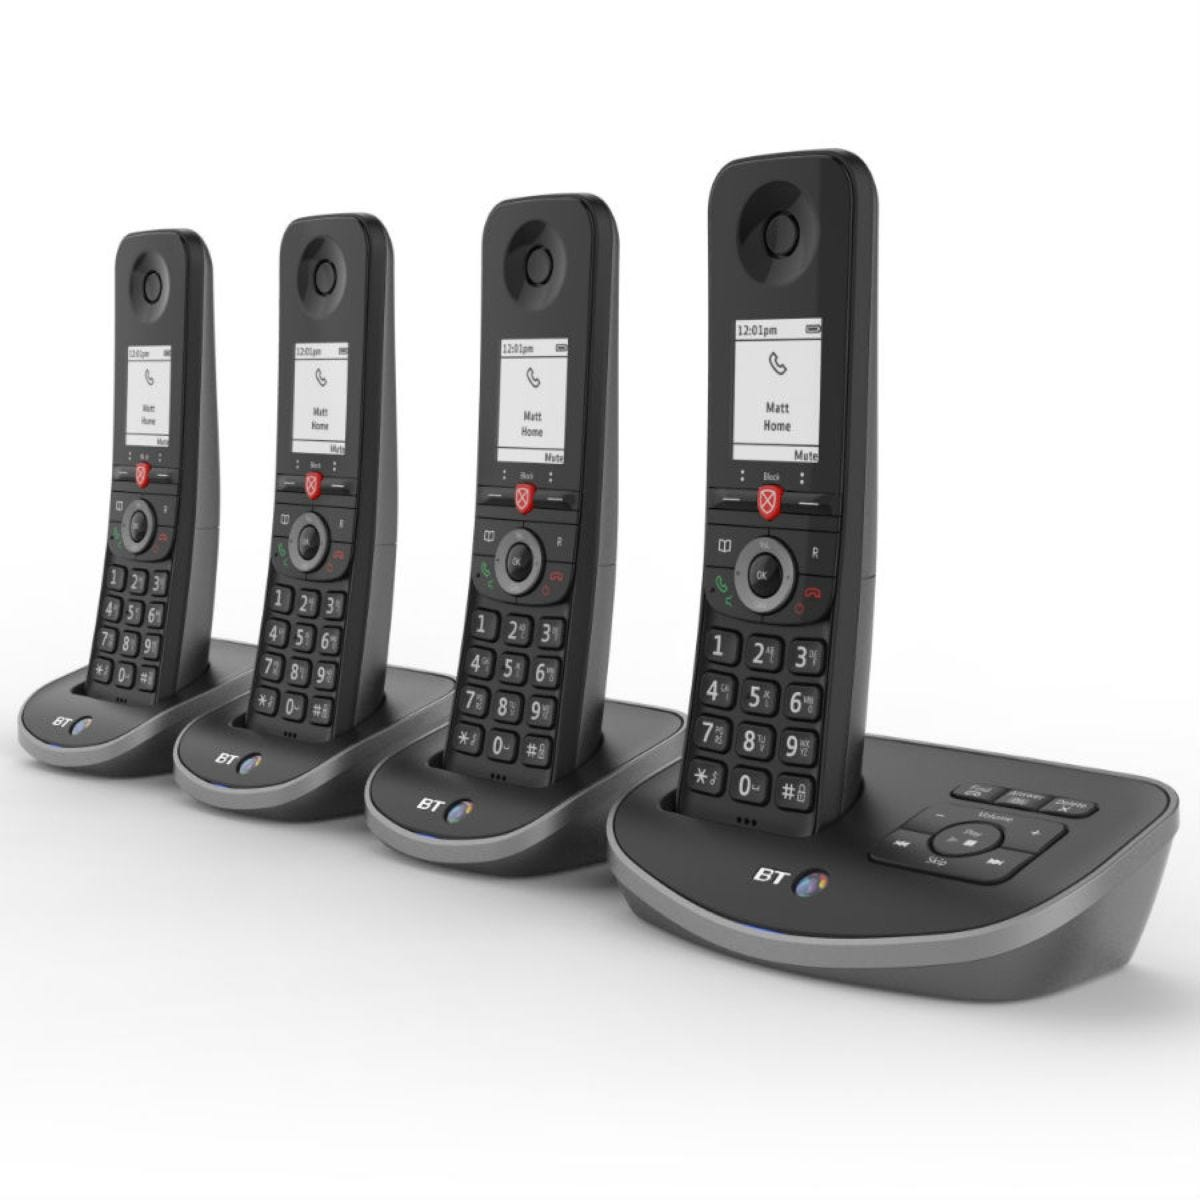 BT Advanced Cordless Home Phone with Nuisance Call Blocking and Answering Machine - Quad